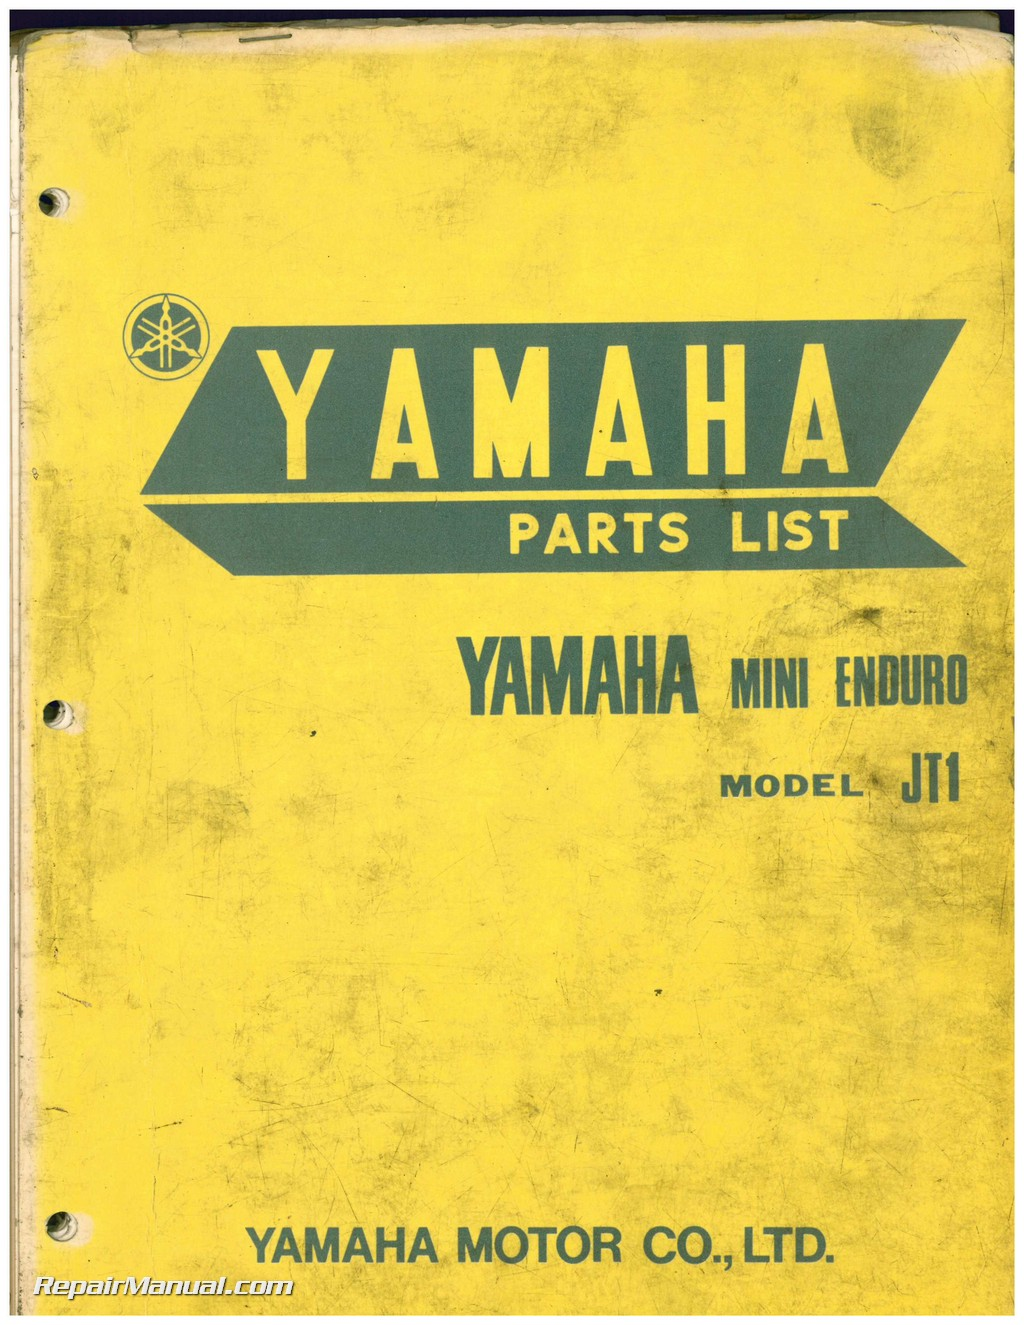 Yamaha Jt1 Wiring Diagram Layout Diagrams Dt 125 Mx 1971 Mini Enduro 60cc Two Stroke Motorcycle Parts Manual Rh Repairmanual Com